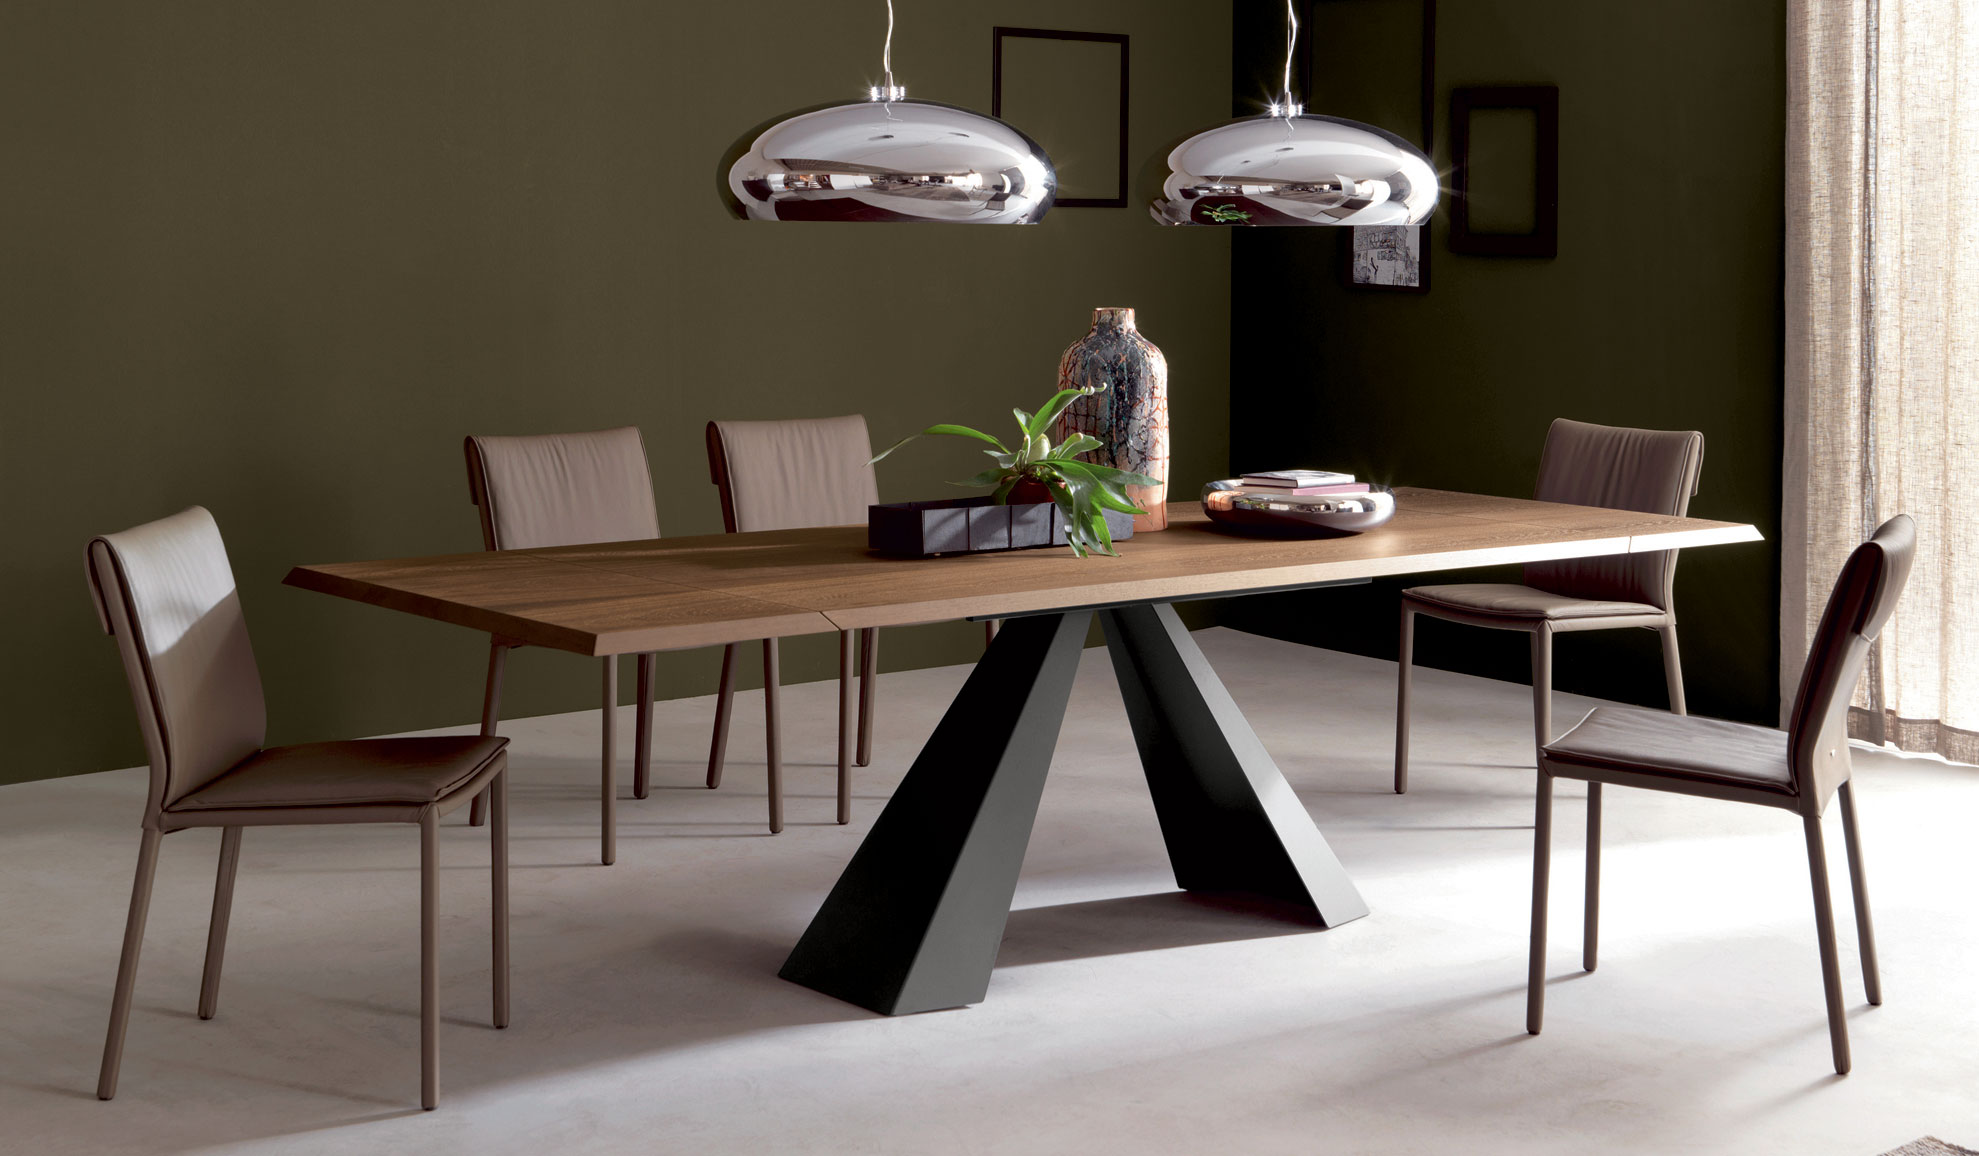 Mesa comedor extensible eliot cattelan en for Mesas salon comedor extensibles